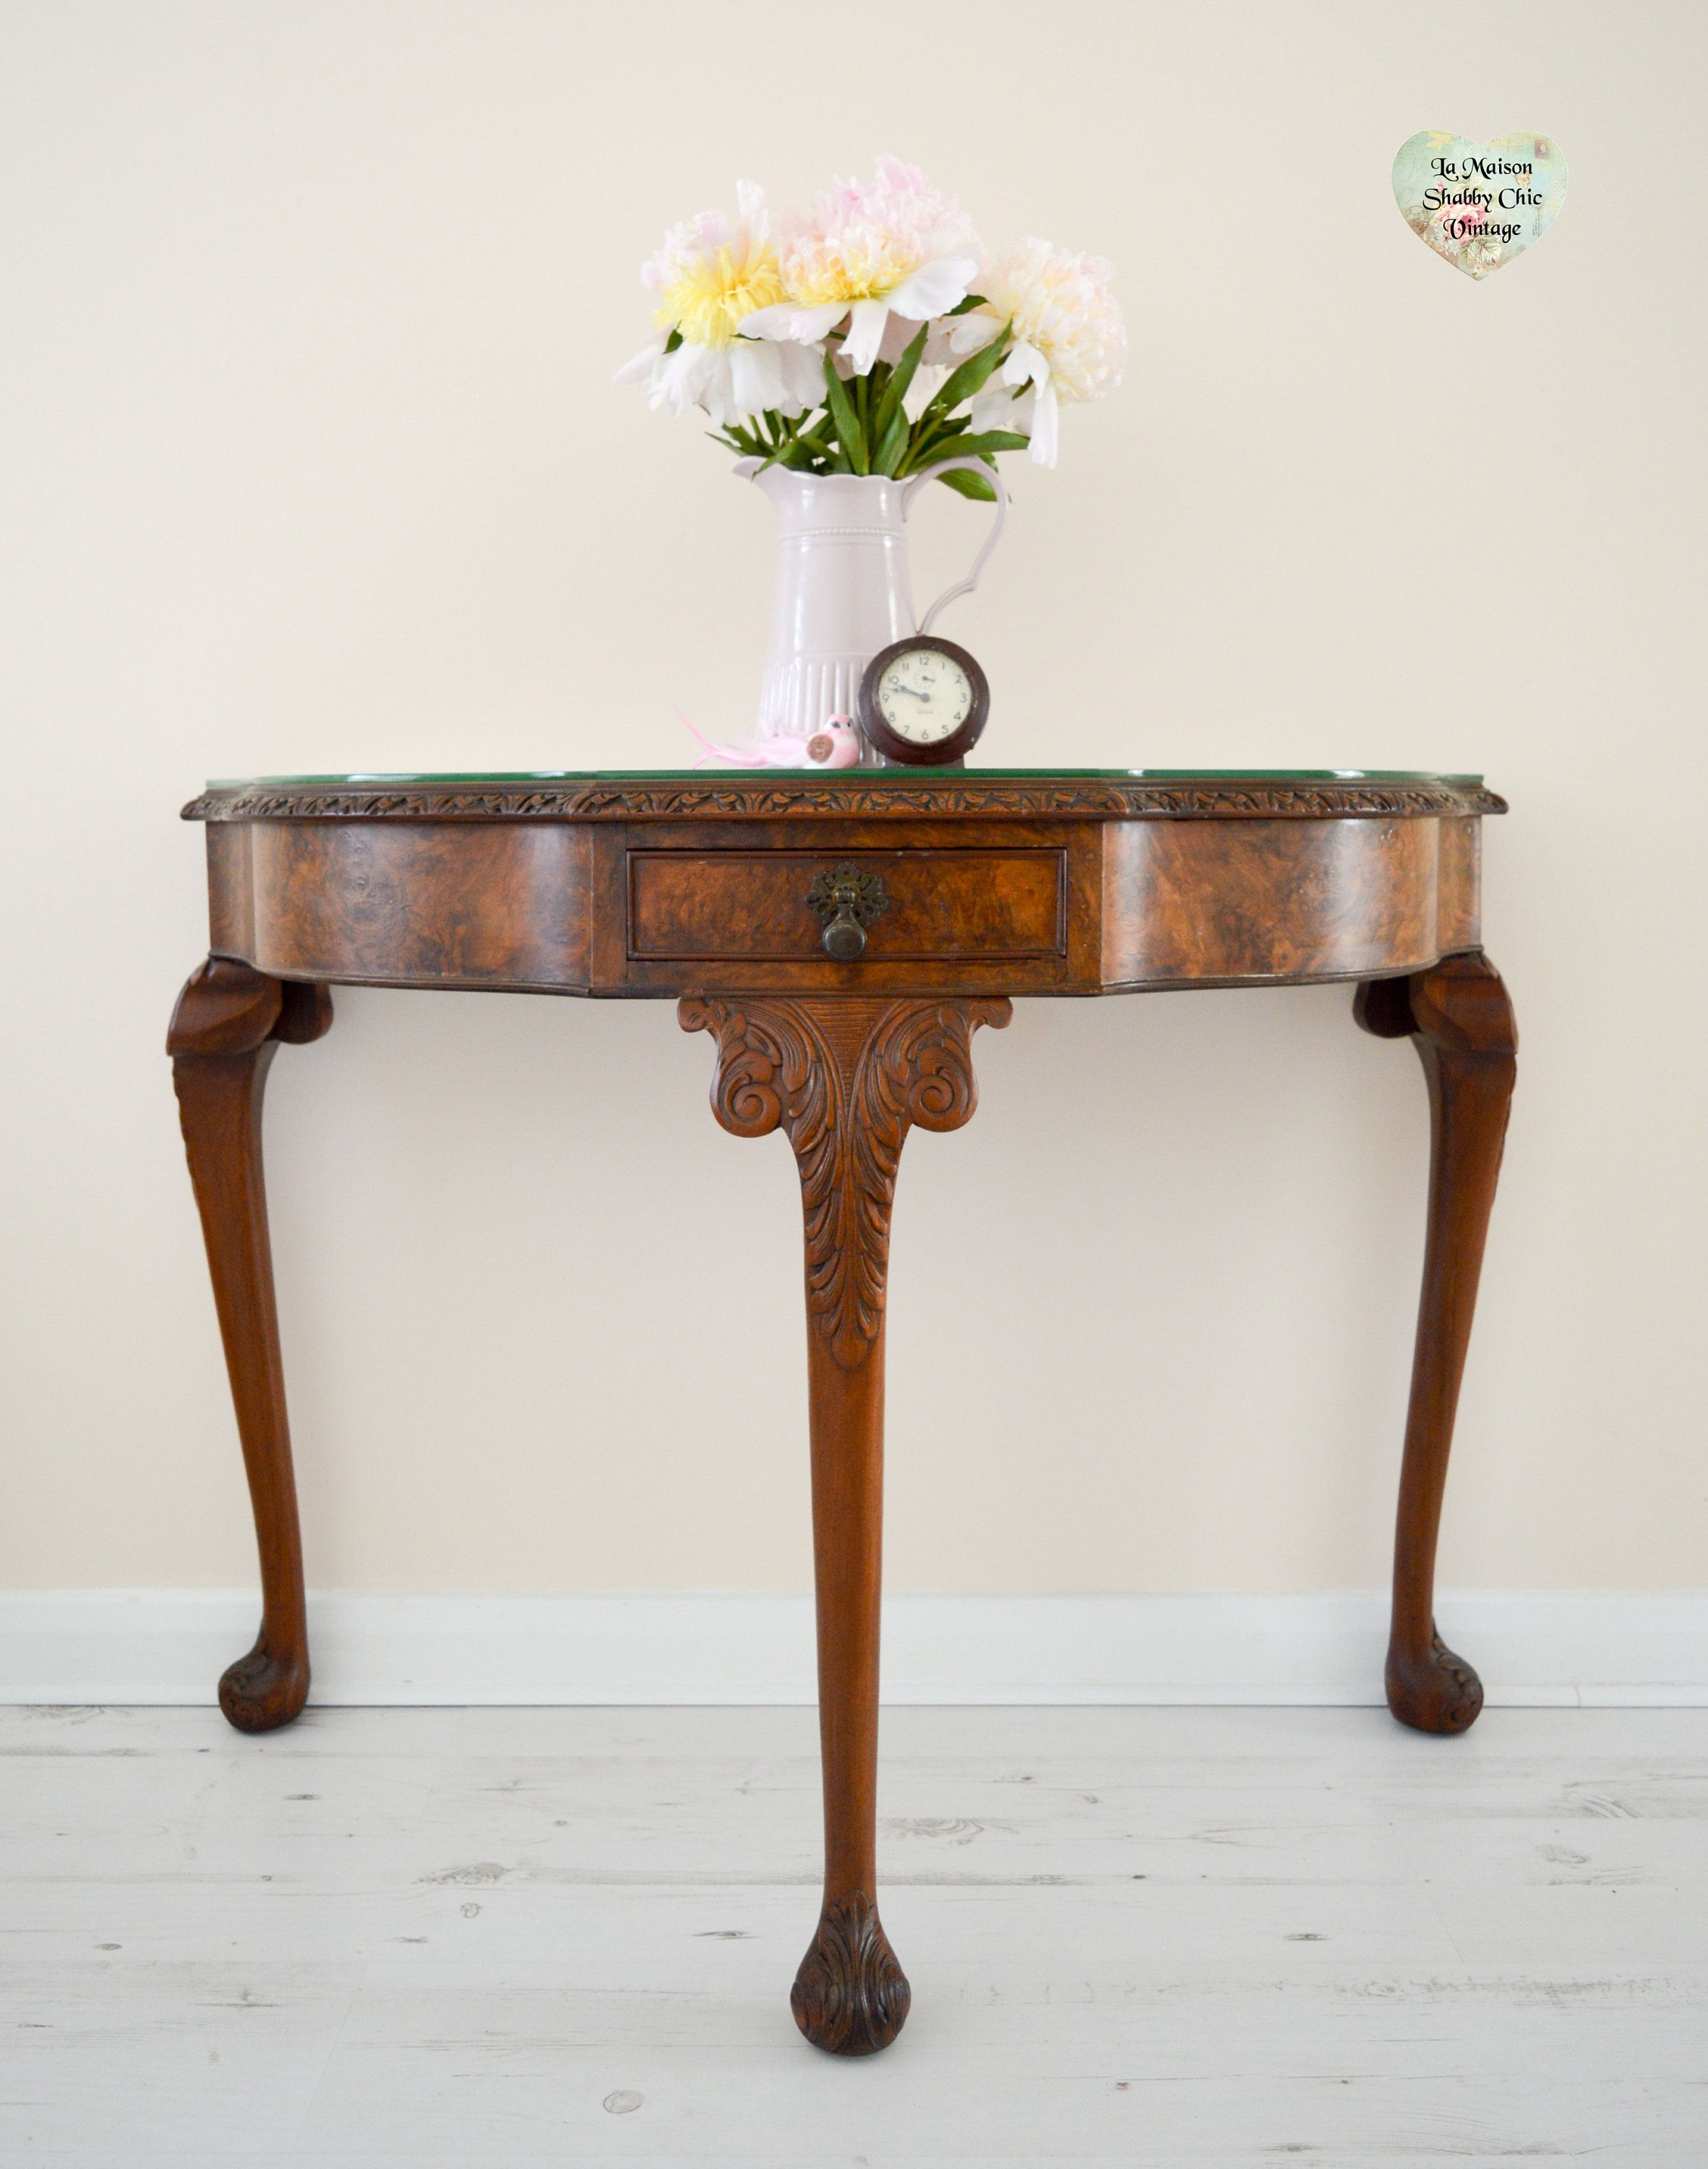 Grand Antique Console Table, Half Moon Regency 1930S Carved Ornate